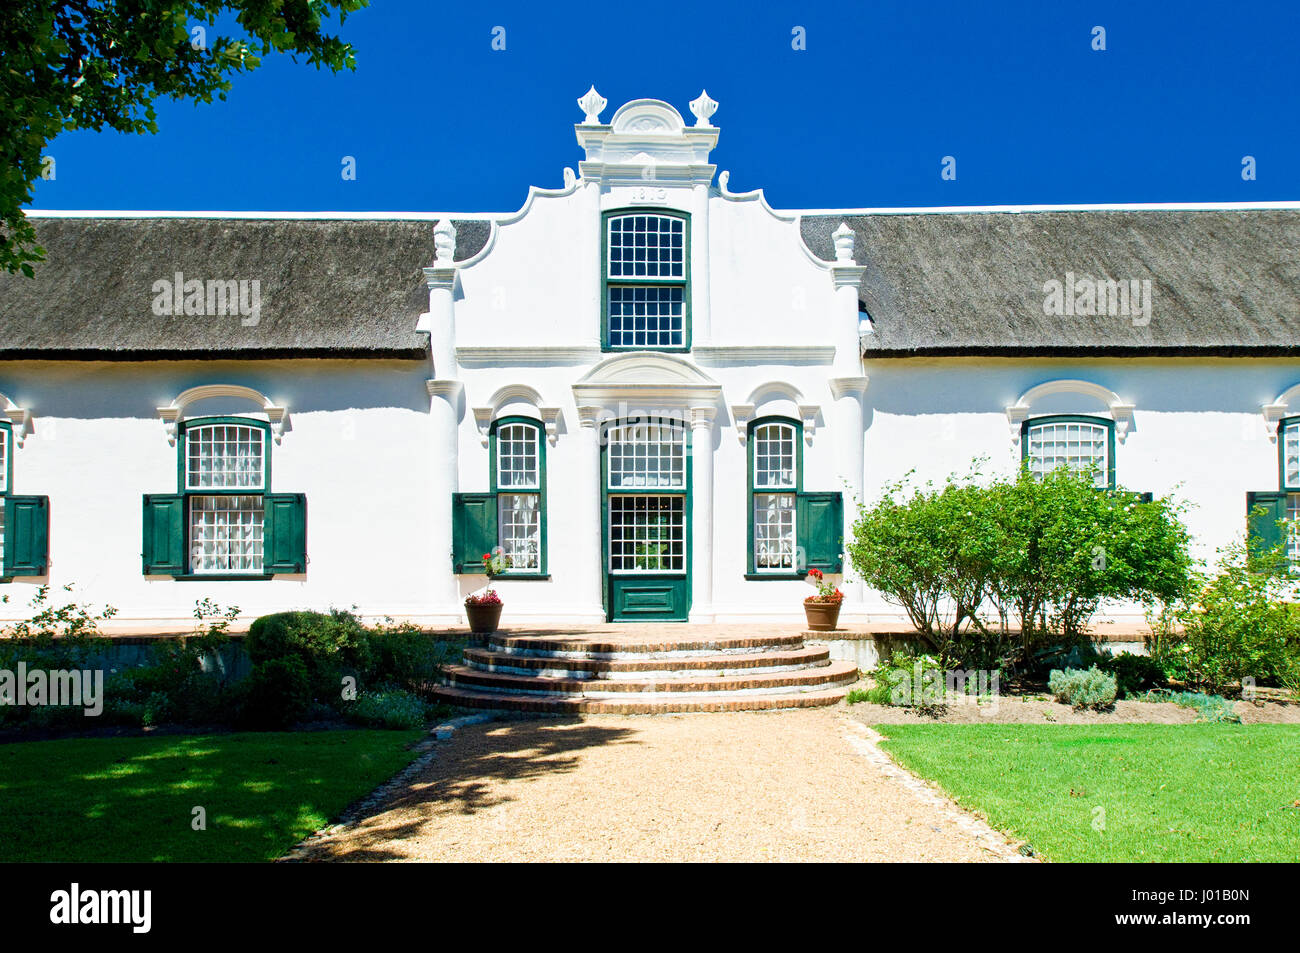 Boschendal is one of the oldest wine estates in South Africa and is located between Franschhoek and Stellenbosch - Stock Image